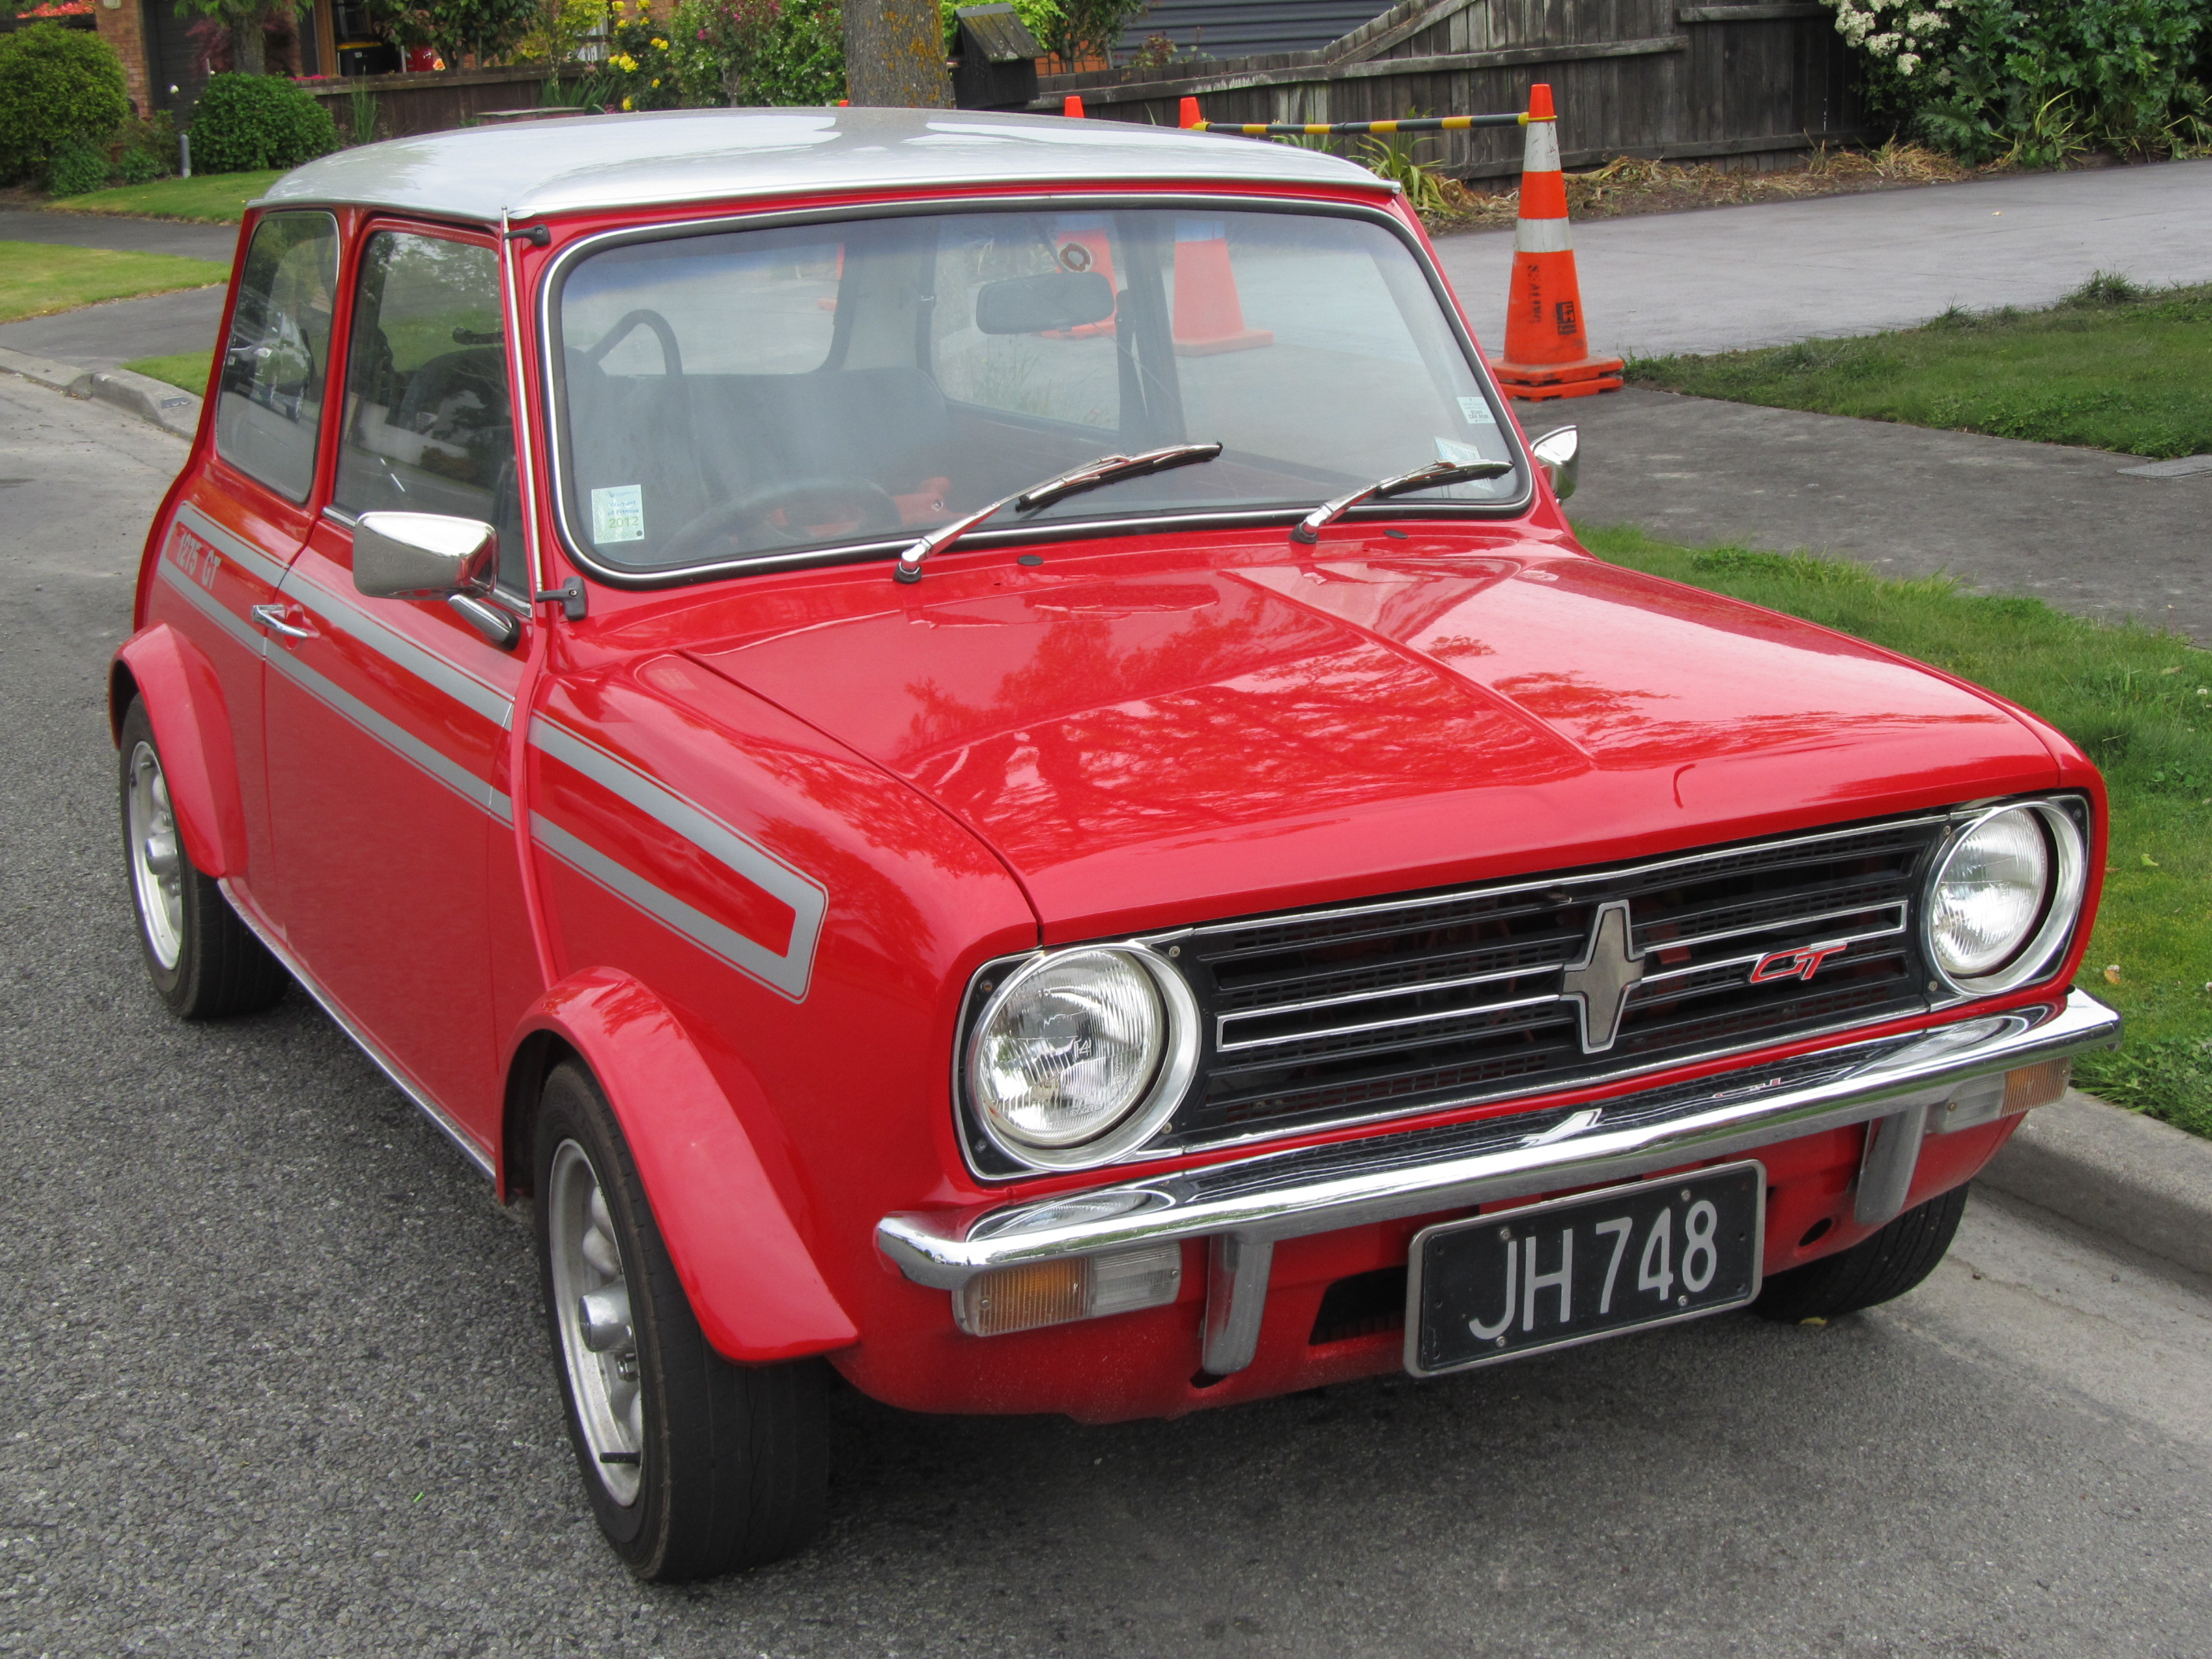 File:1979 Leyland Mini 1275 GT (8204496485).jpg